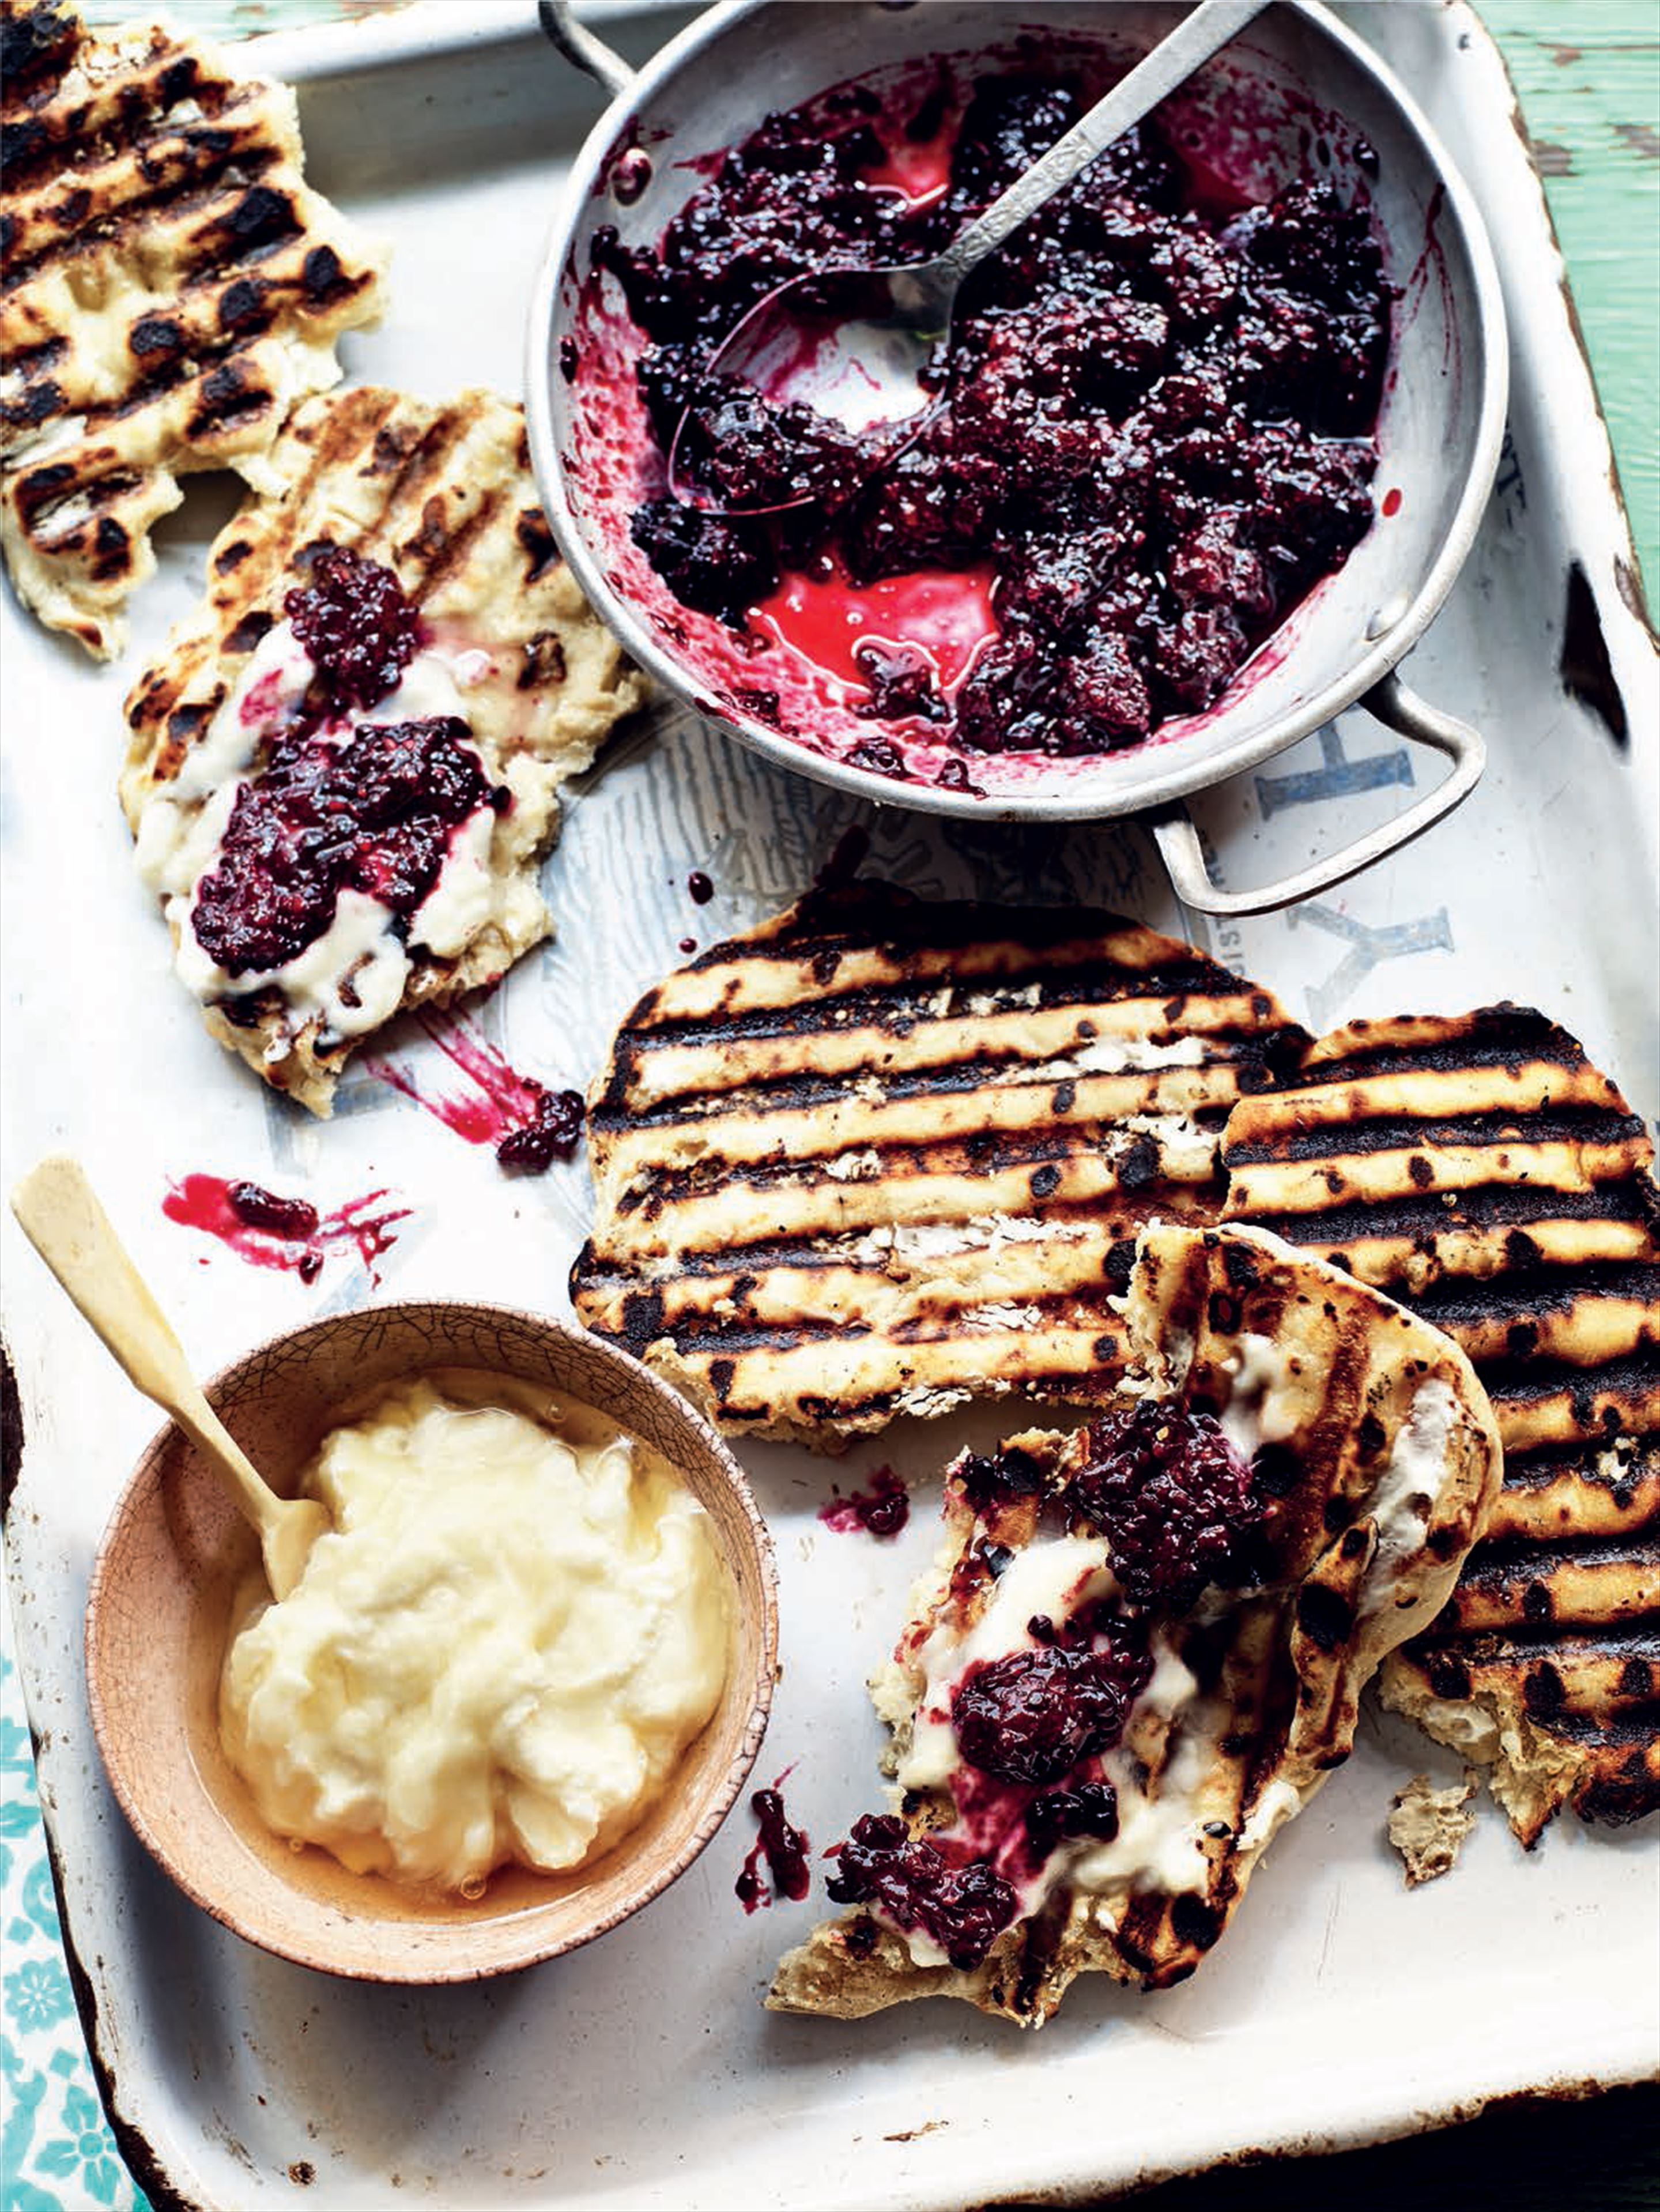 Slow-cooked blackberries with Turkish pide and creamed sheep's cheese